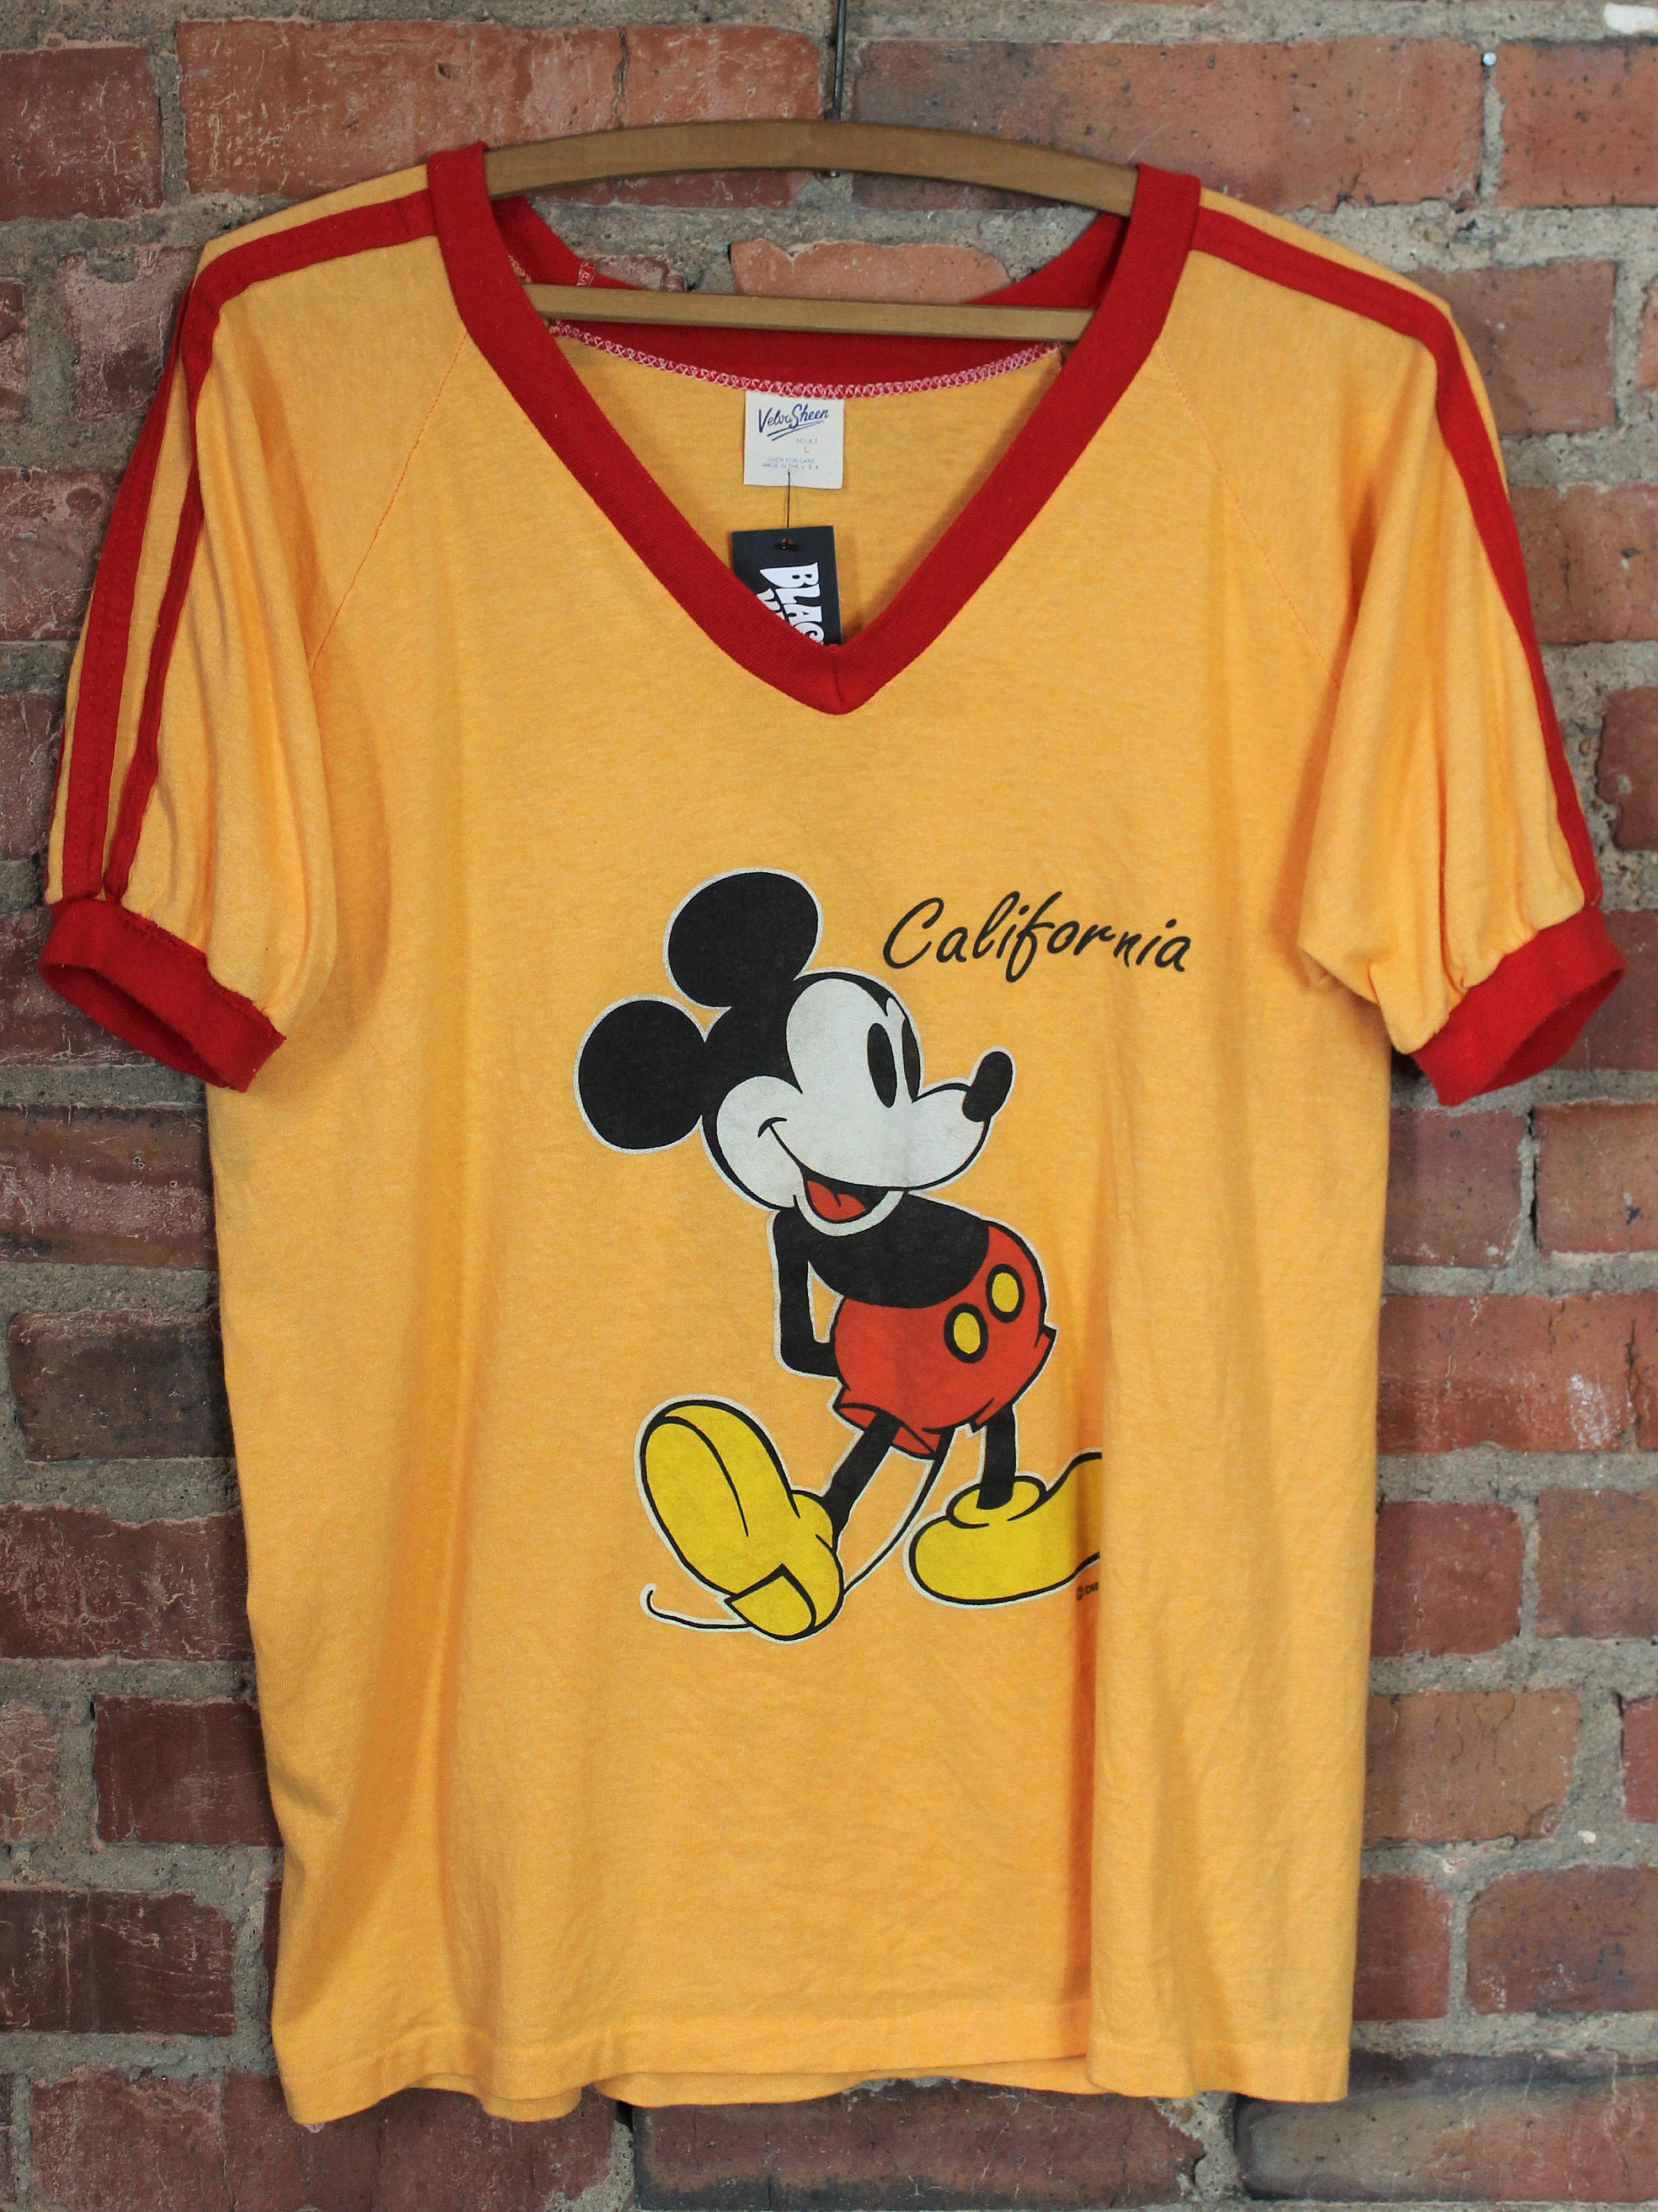 1970s Raglan Tee in Yellow and Red with Mickey Mouse from Black Shag Vintage